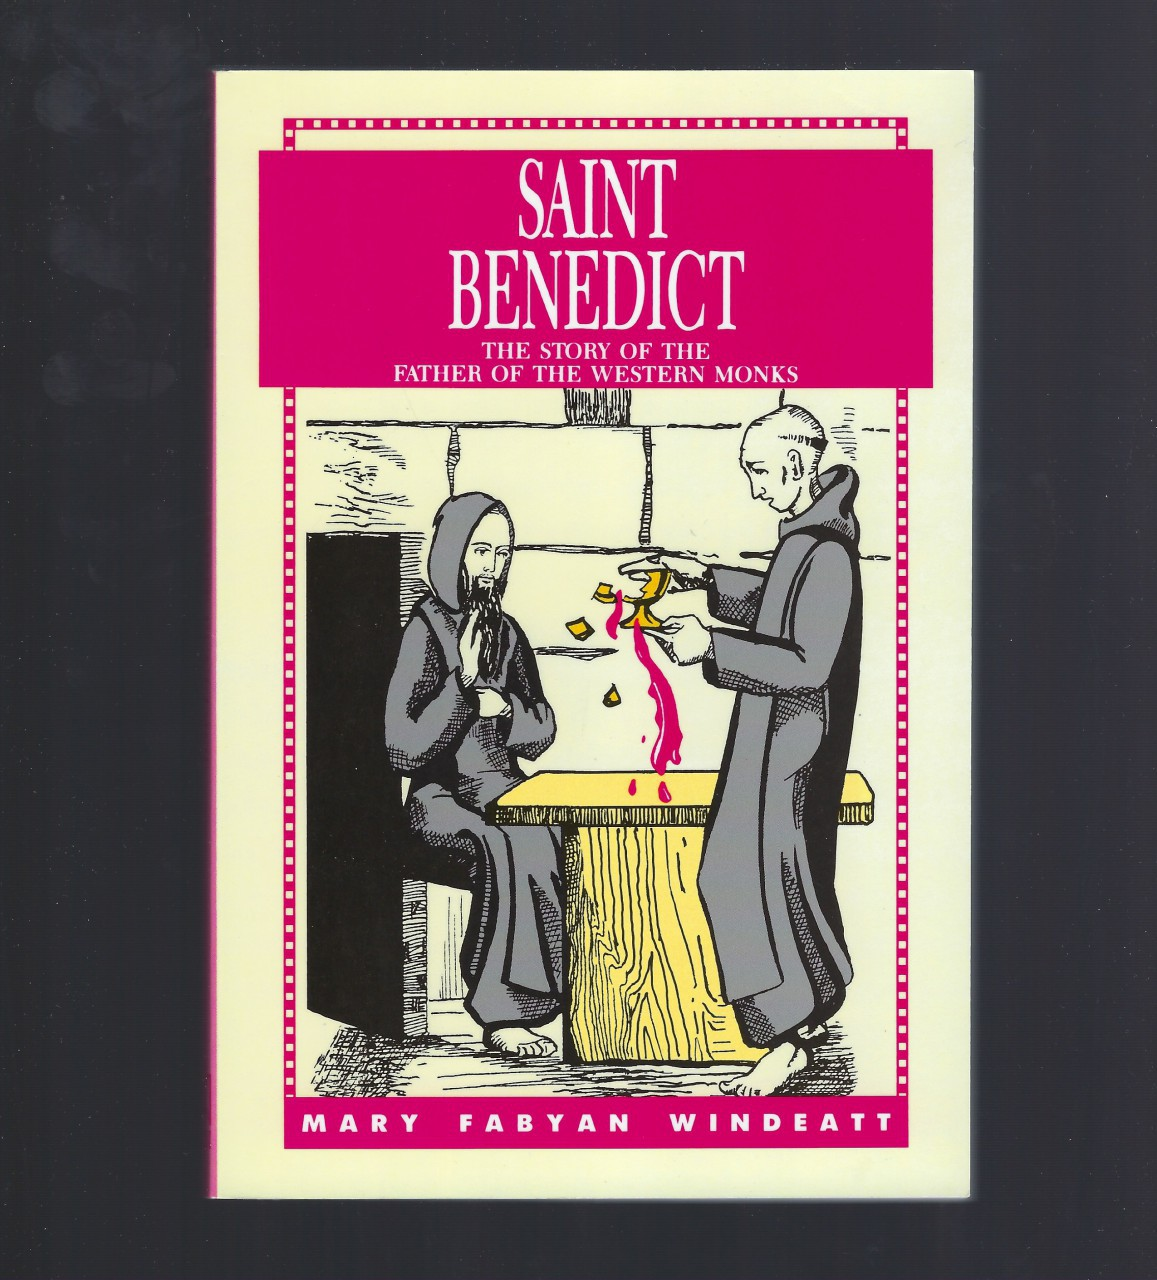 Saint Benedict The Story of the Father of the Western Monks (Windeatt Saint Book), Mary Fabyan Windeatt